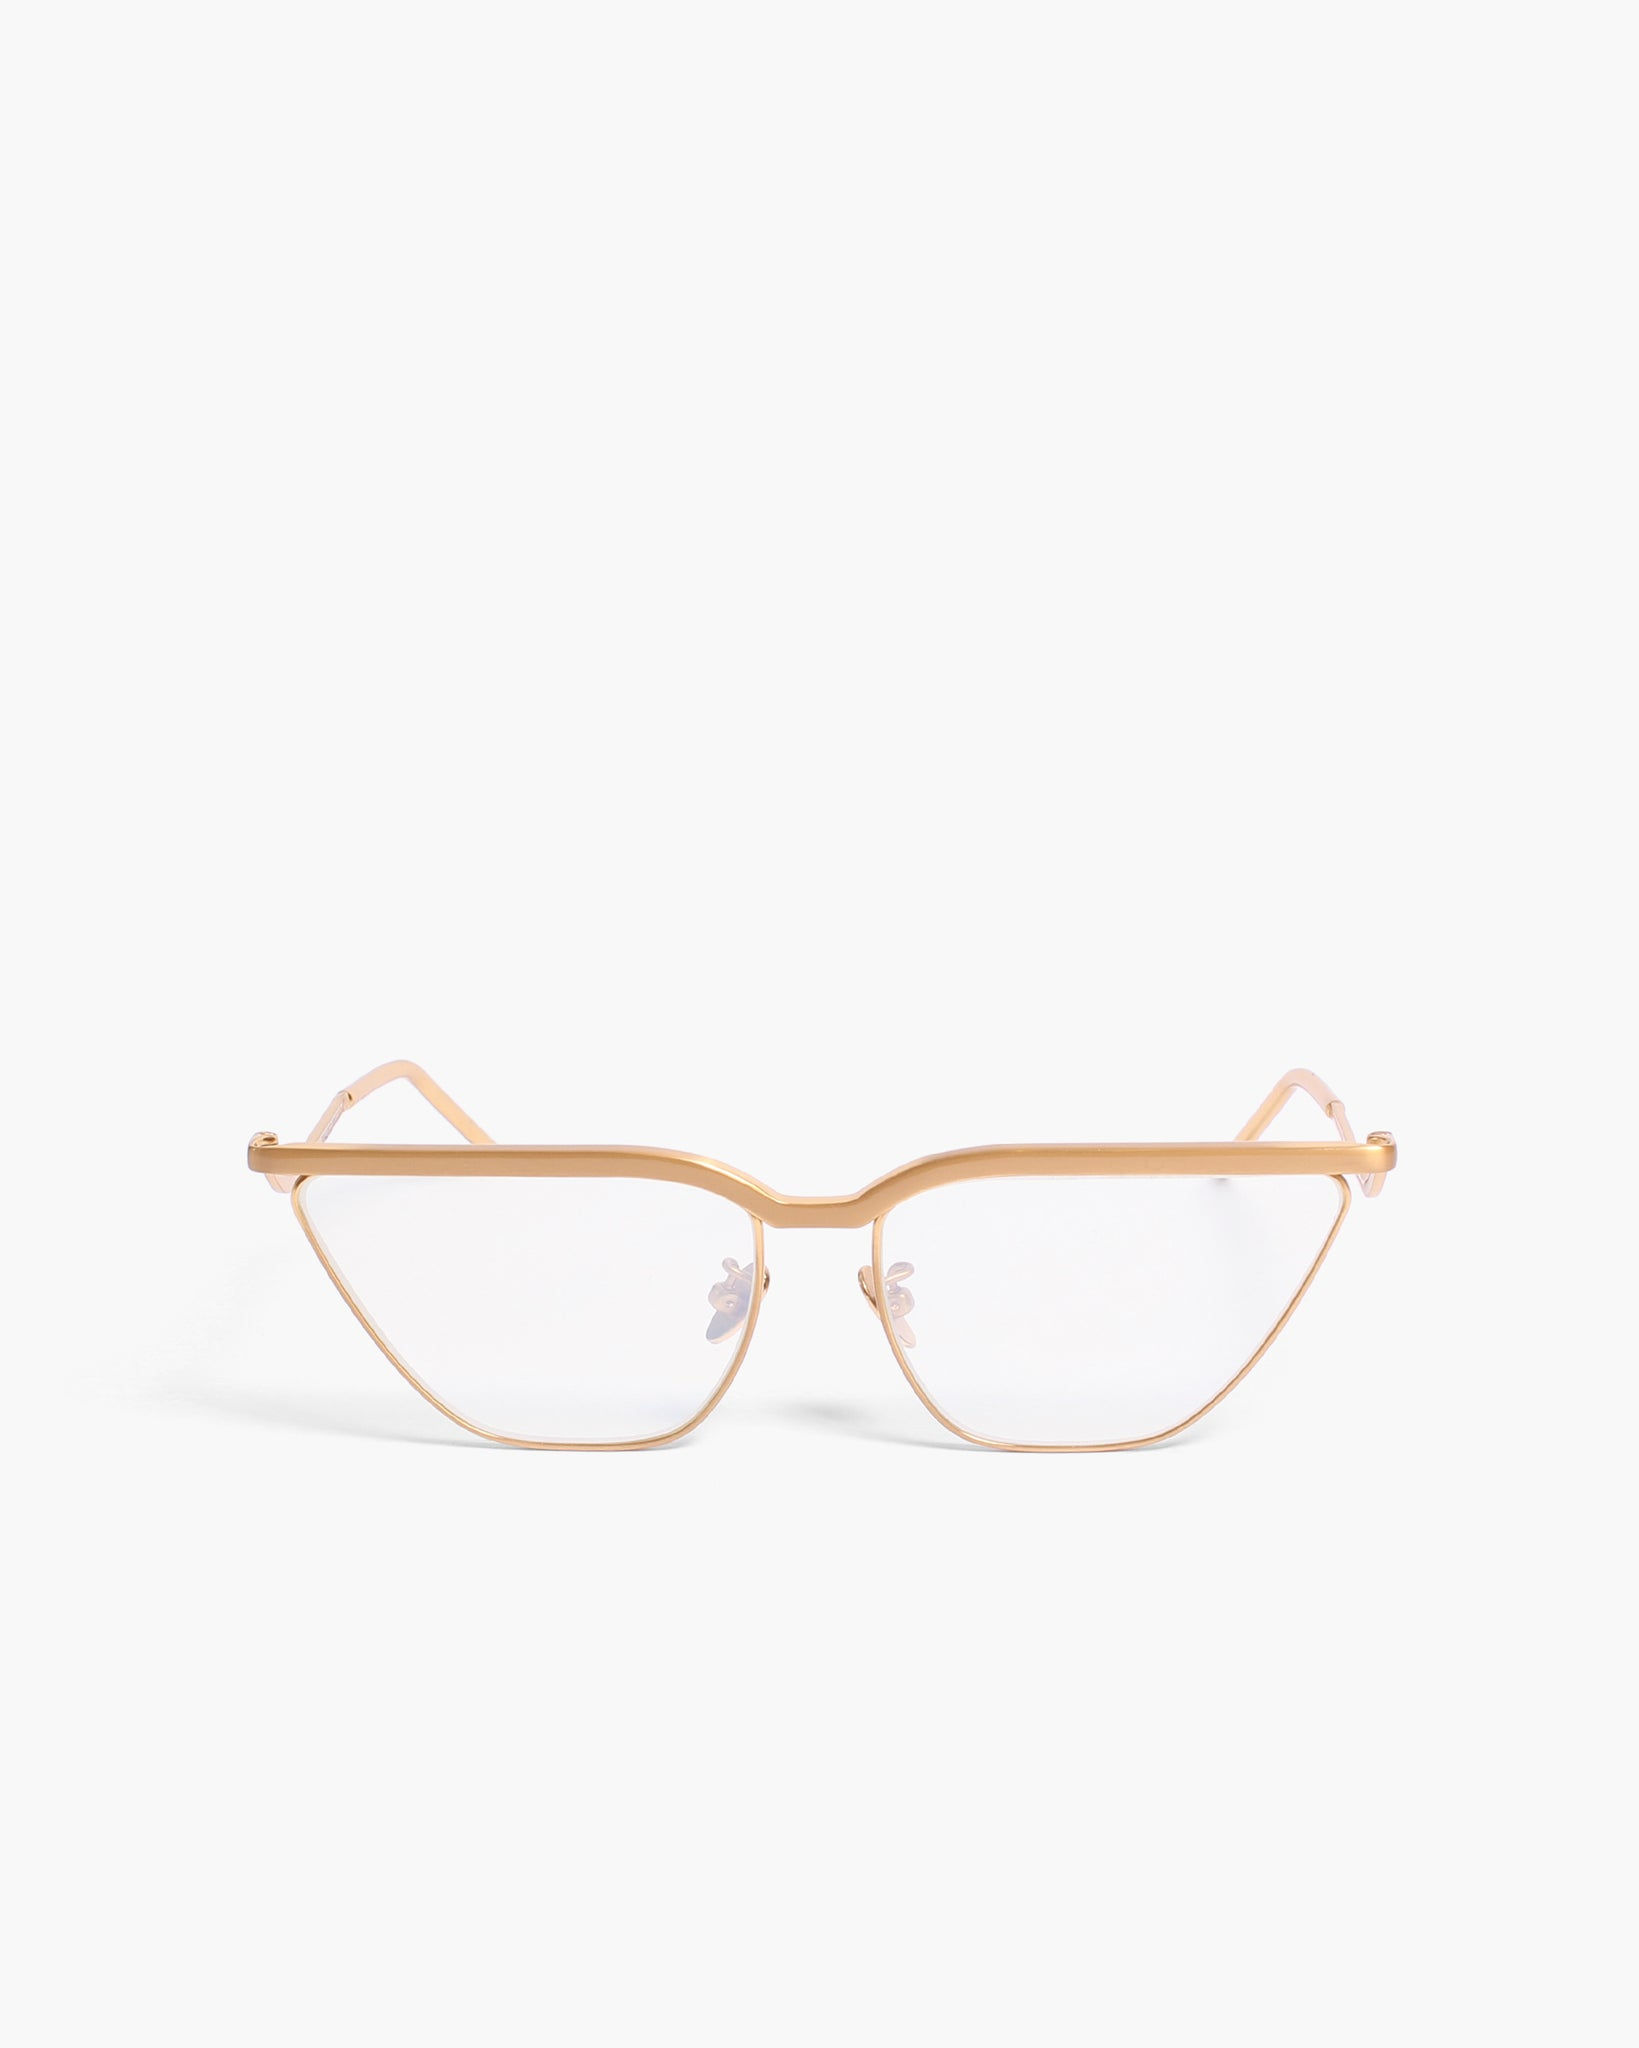 Kira Sunglasses Gold